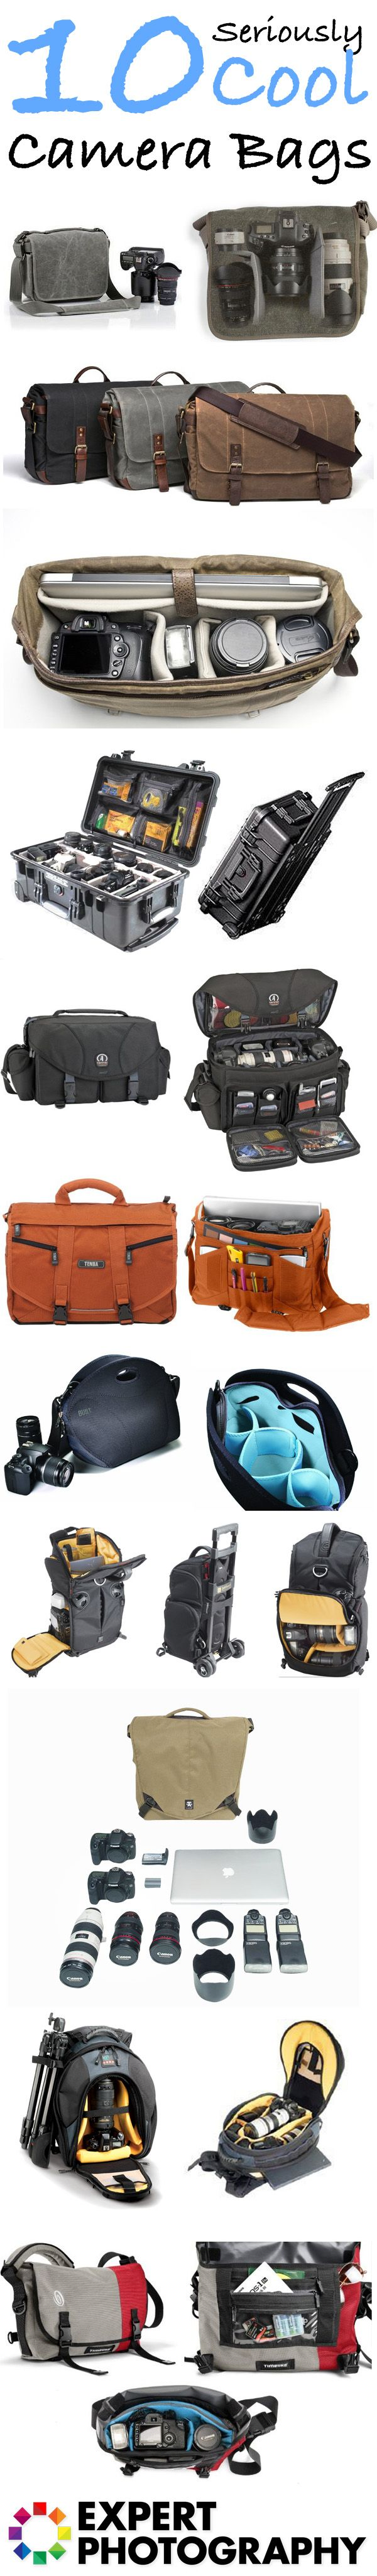 Job well done! I'm always on the hunt for the perfect bag. These are step in right direction. - 10 Seriously Cool Camera Bags